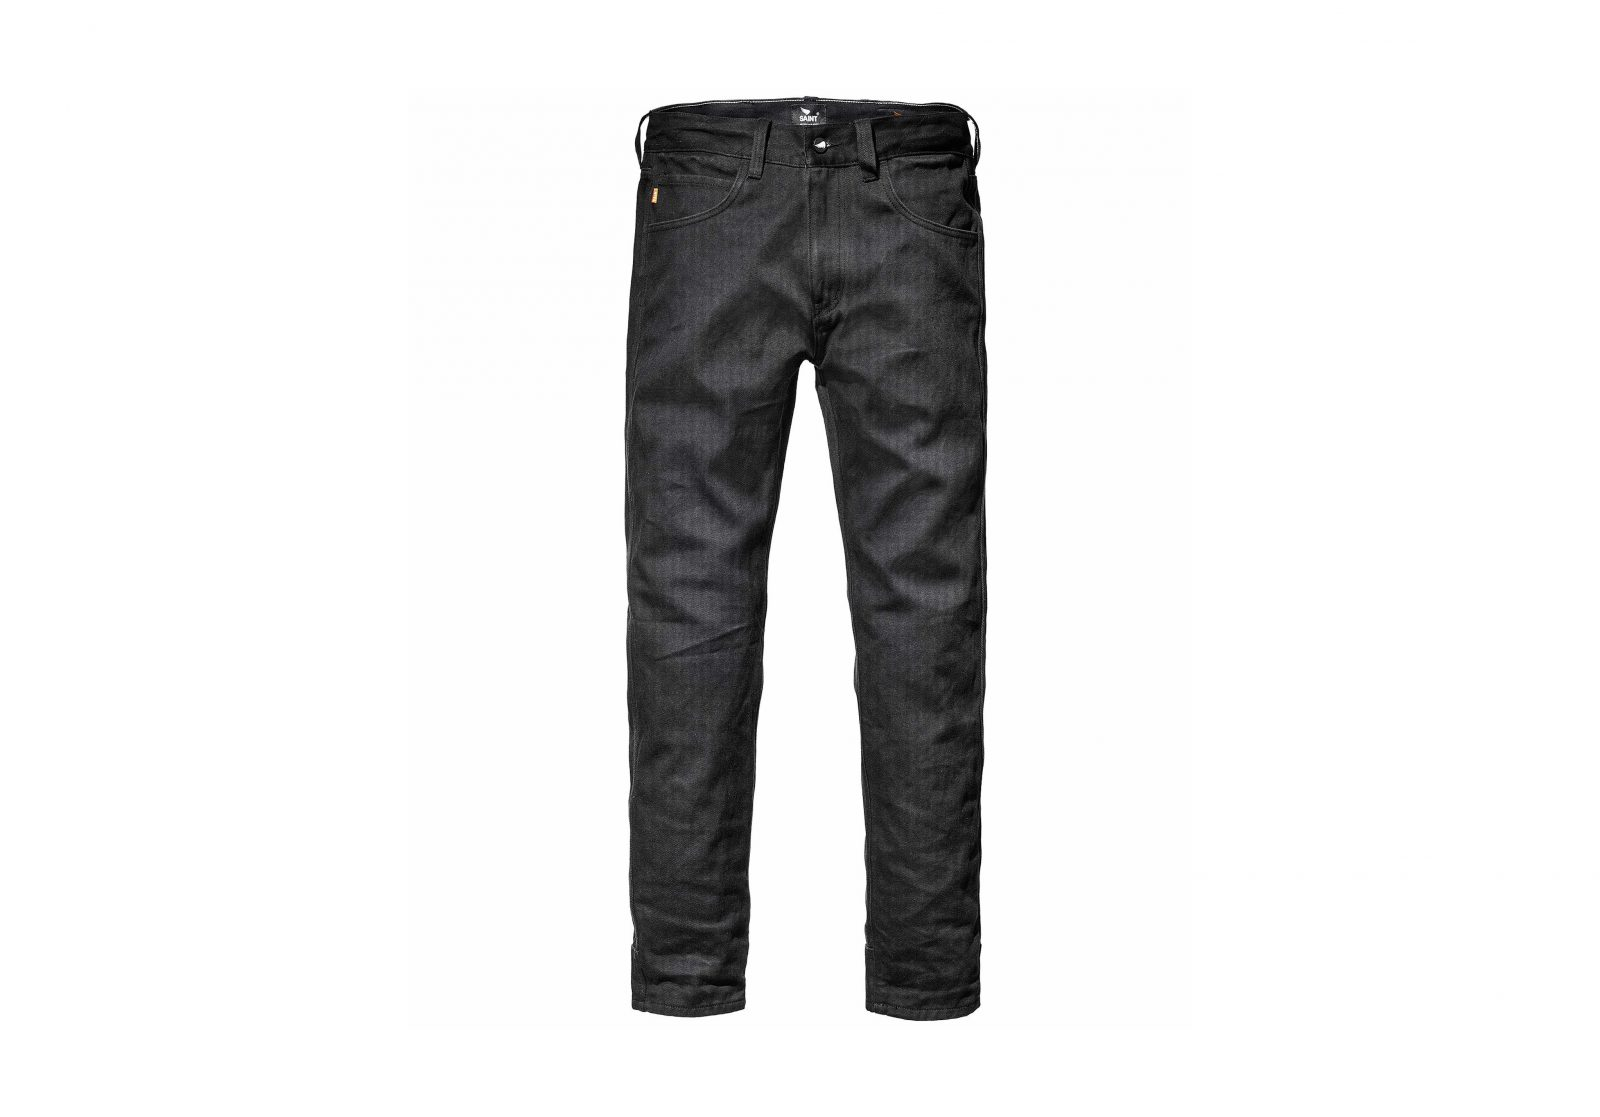 Saint Unbreakable 6 Motorcycle Jeans 1600x1117 - Saint Unbreakable 6 Motorcycle Jeans